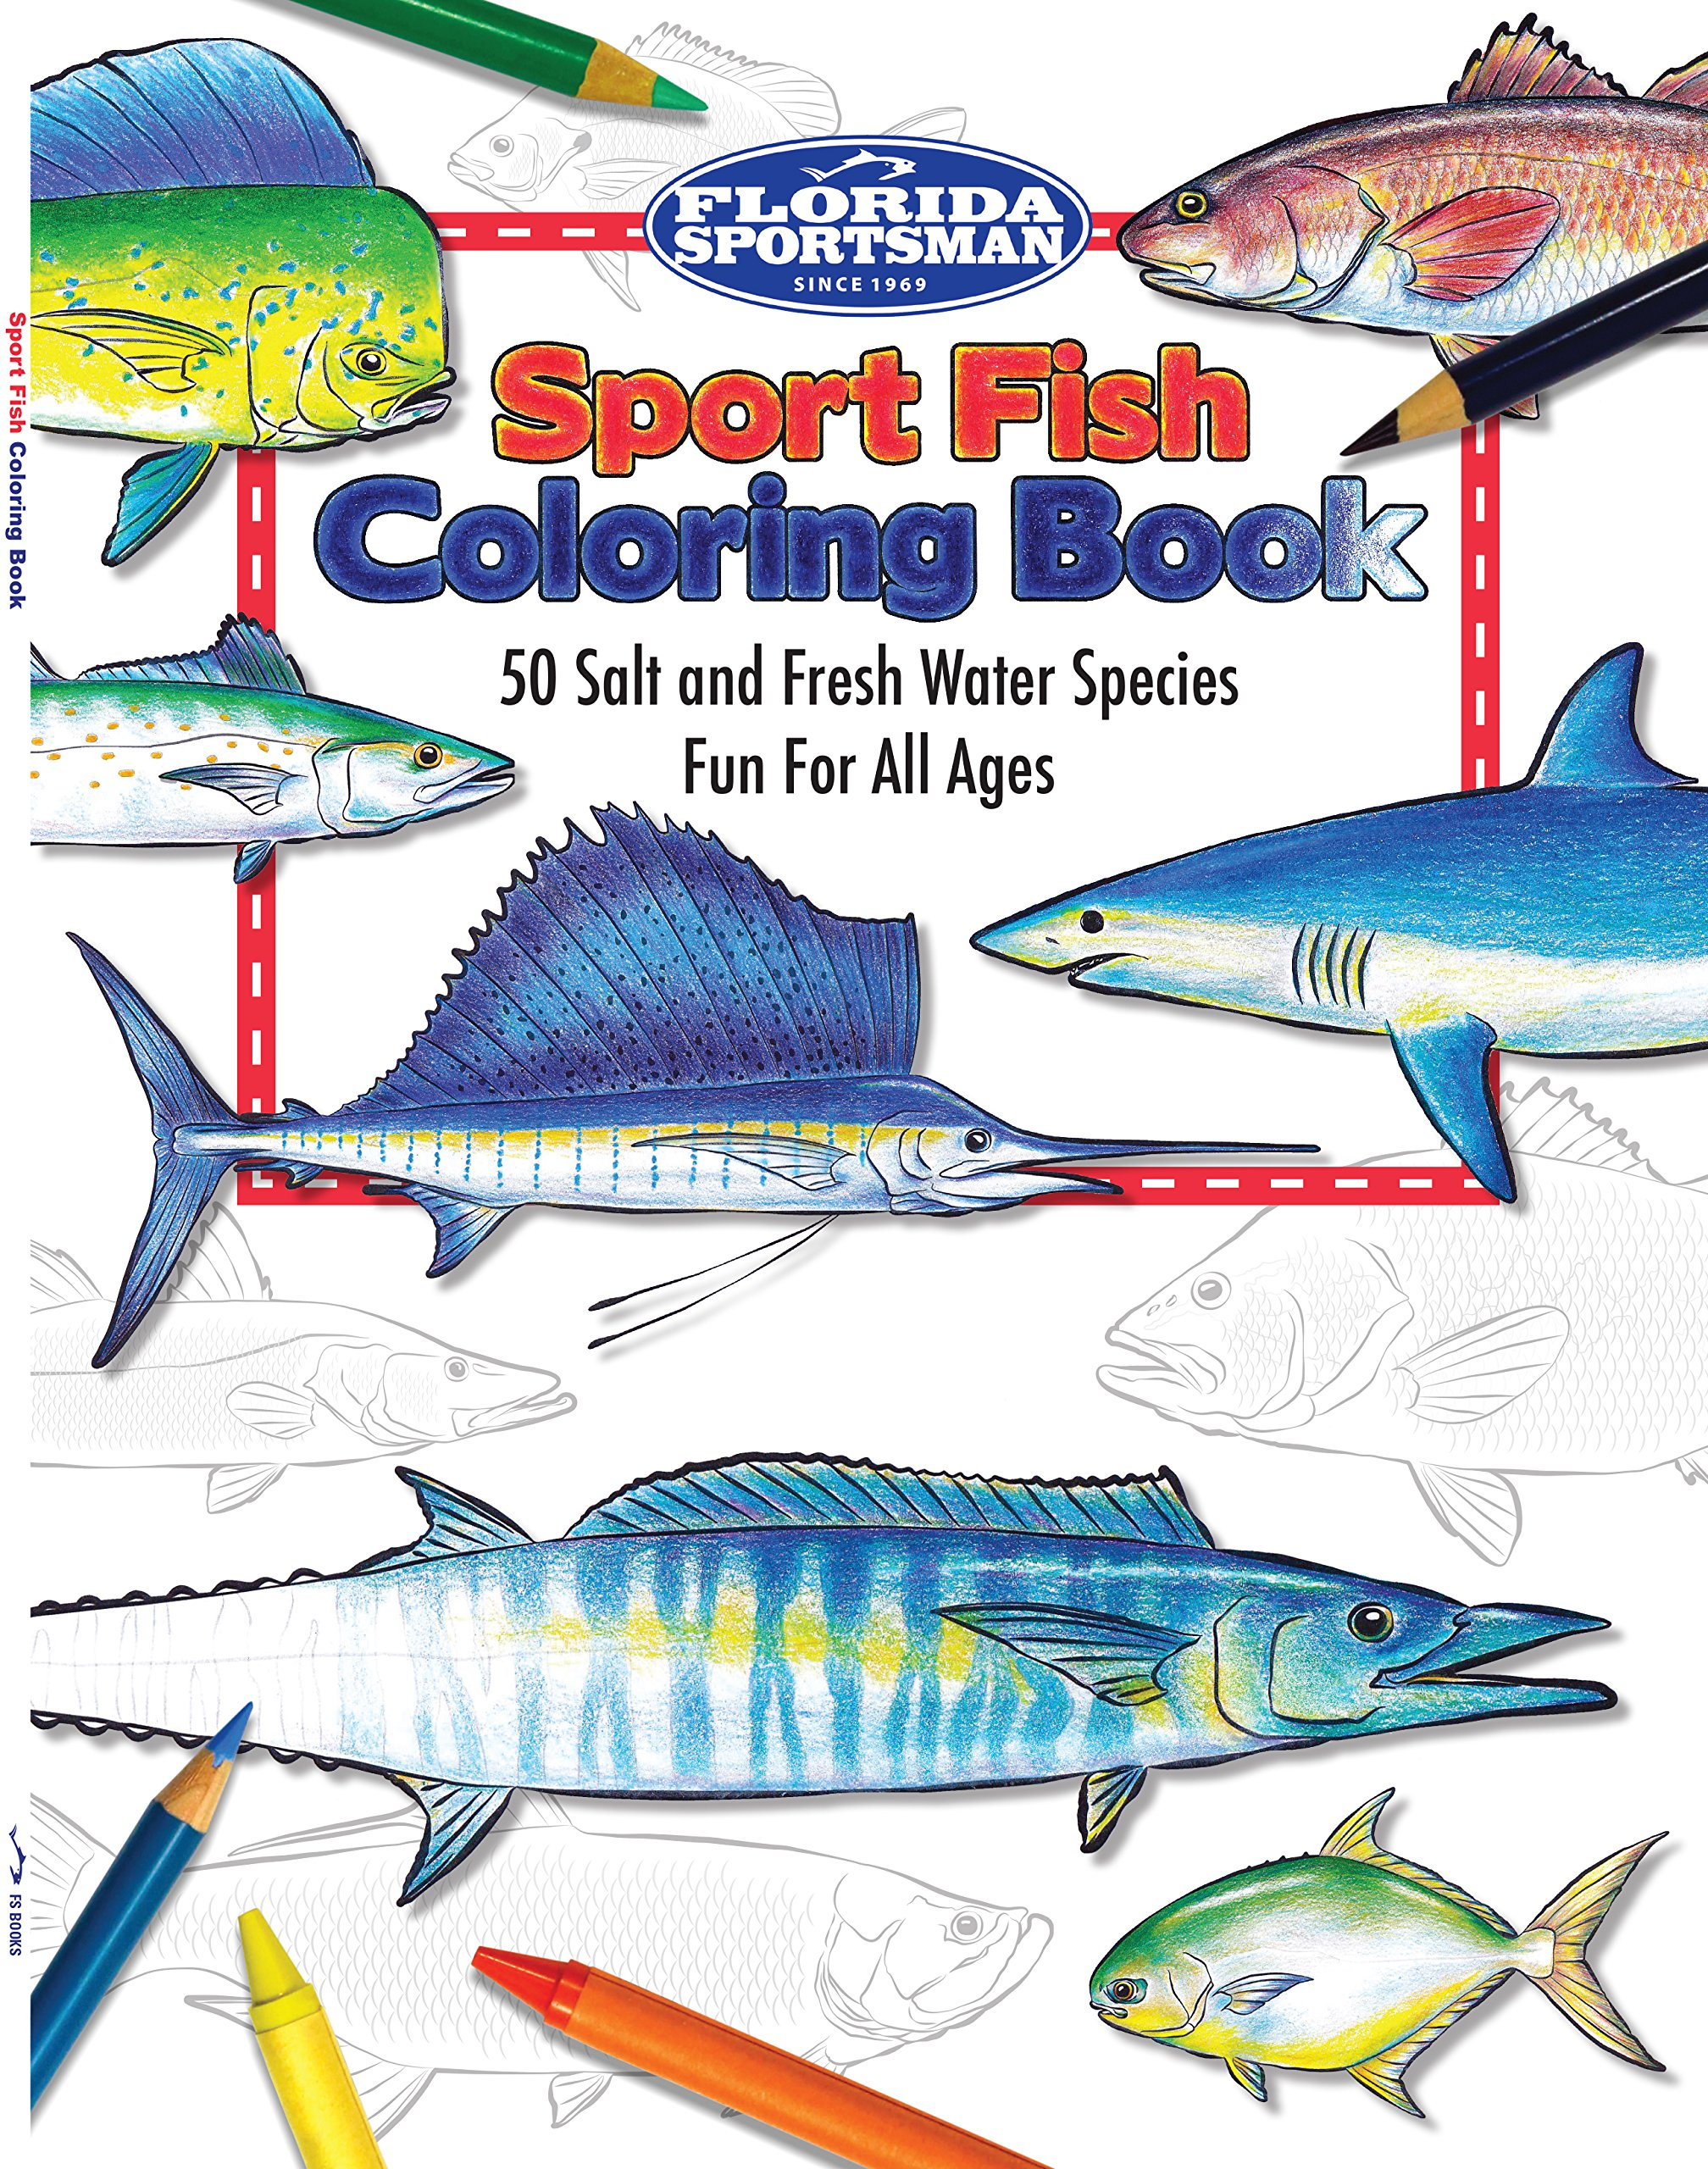 Florida Sportsman Sport Fish Coloring Book